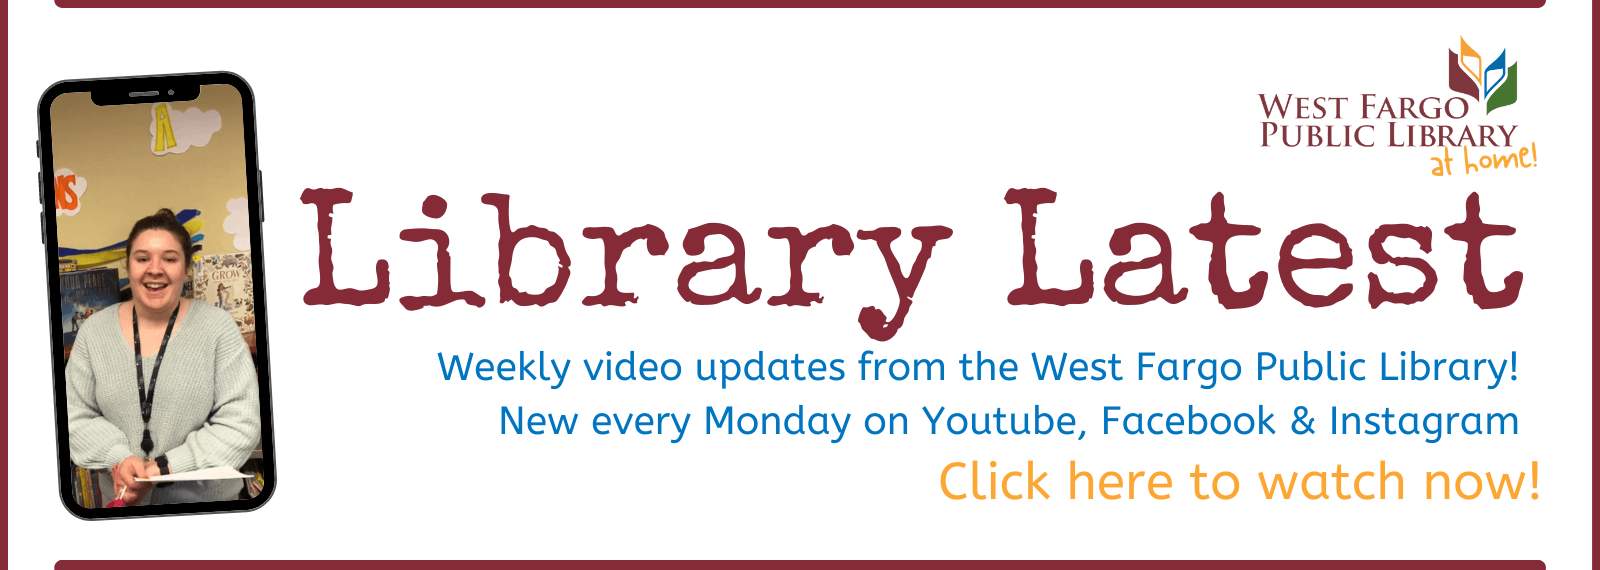 Library Latest Weekly updates from the West Fargo Public Library Click here to watch now